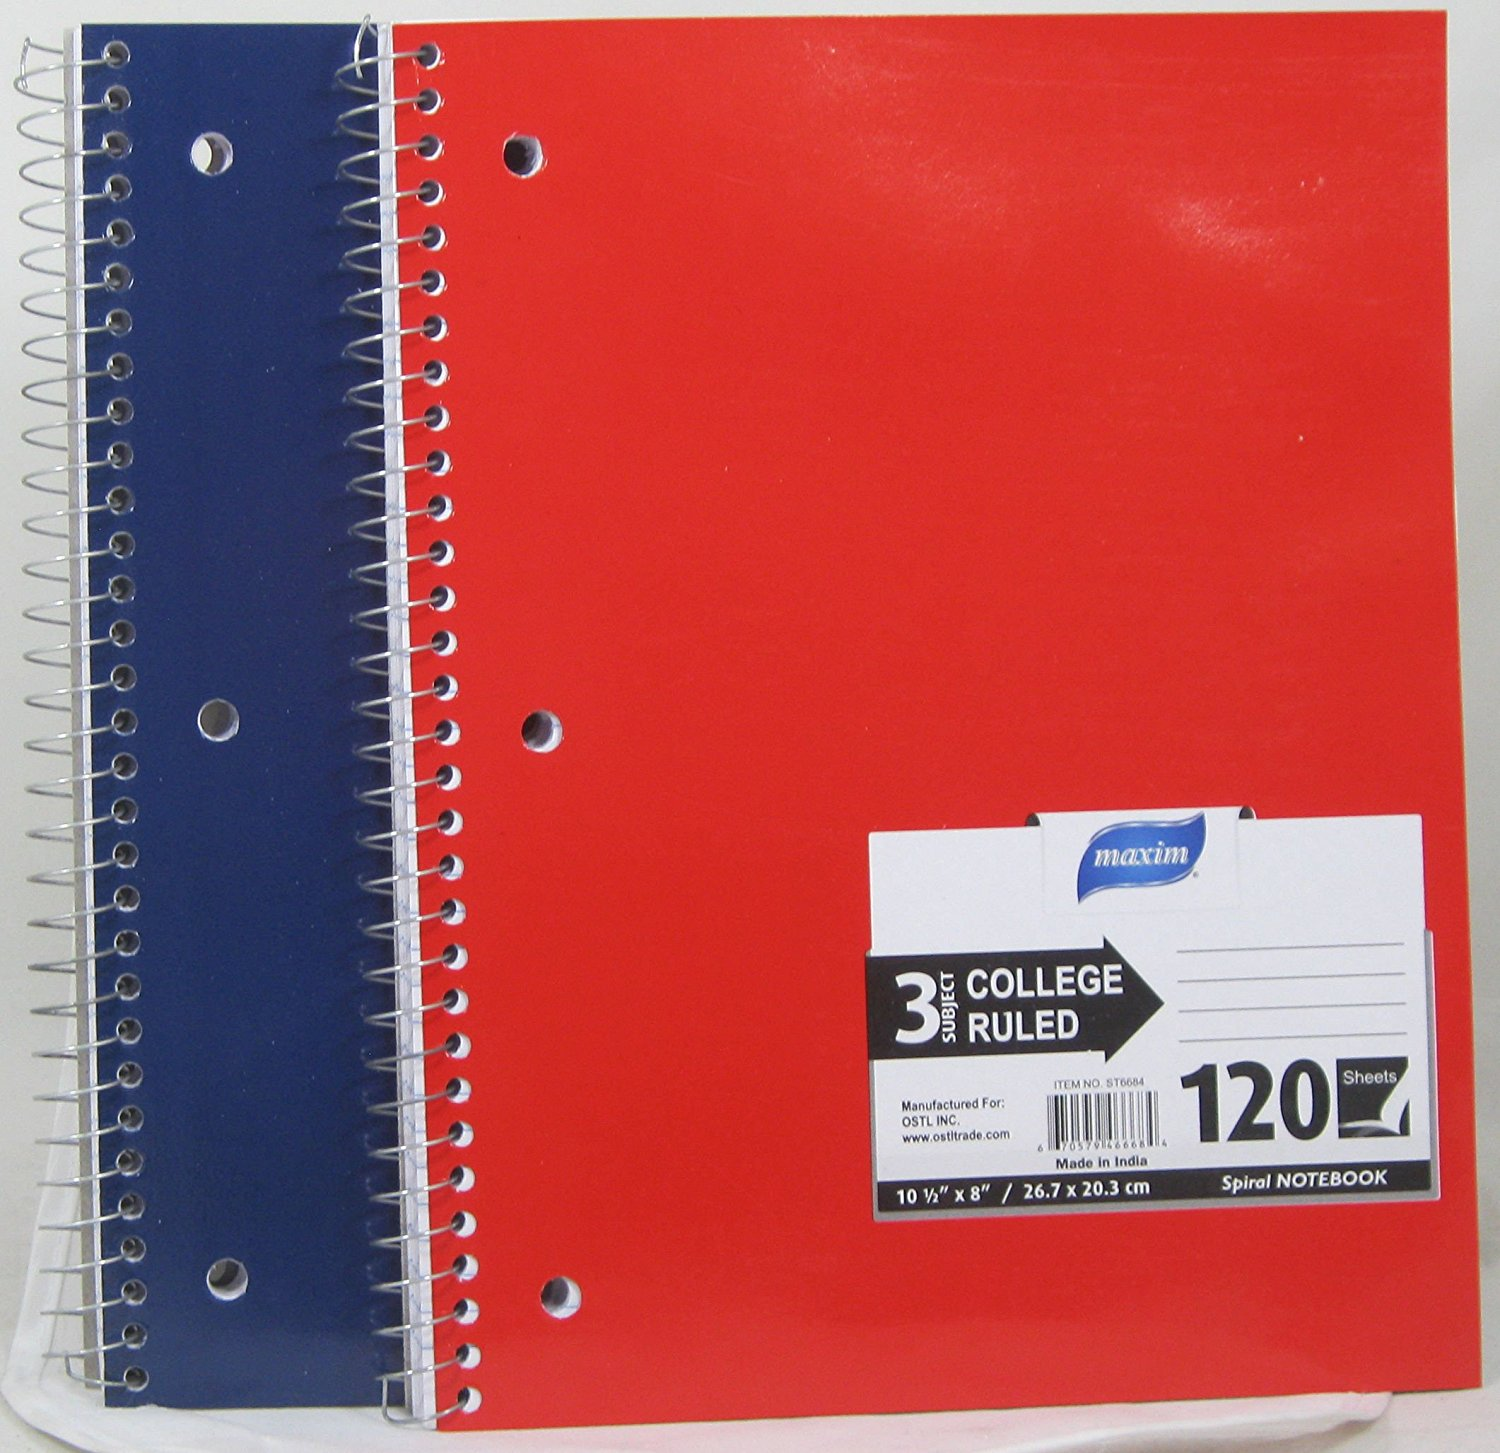 "3 Pk, Maxim College Ruled 3-Subject Spiral Notebook, 120 Sheets, Assorted Colors10 1/2"" x 8"""